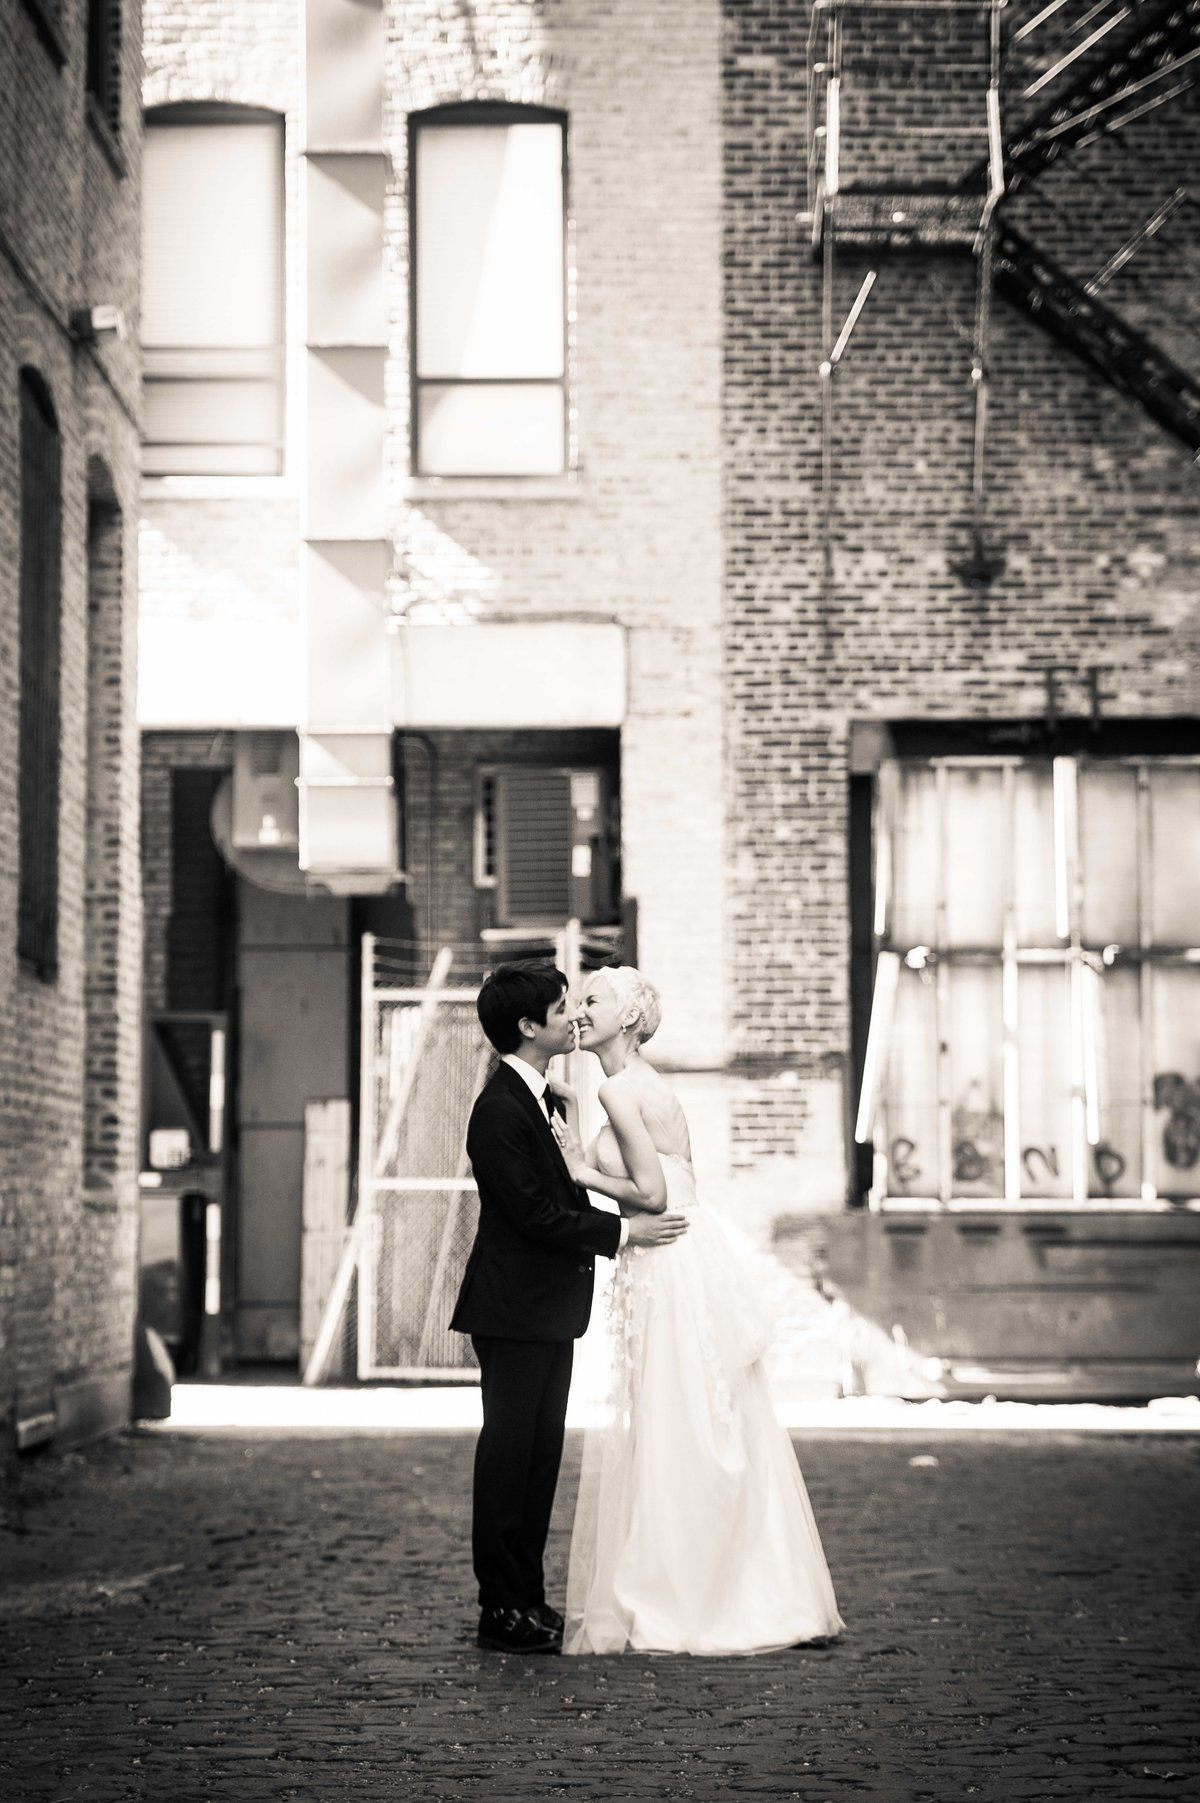 Bride and groom kiss, urban portrait, Chicago IL.